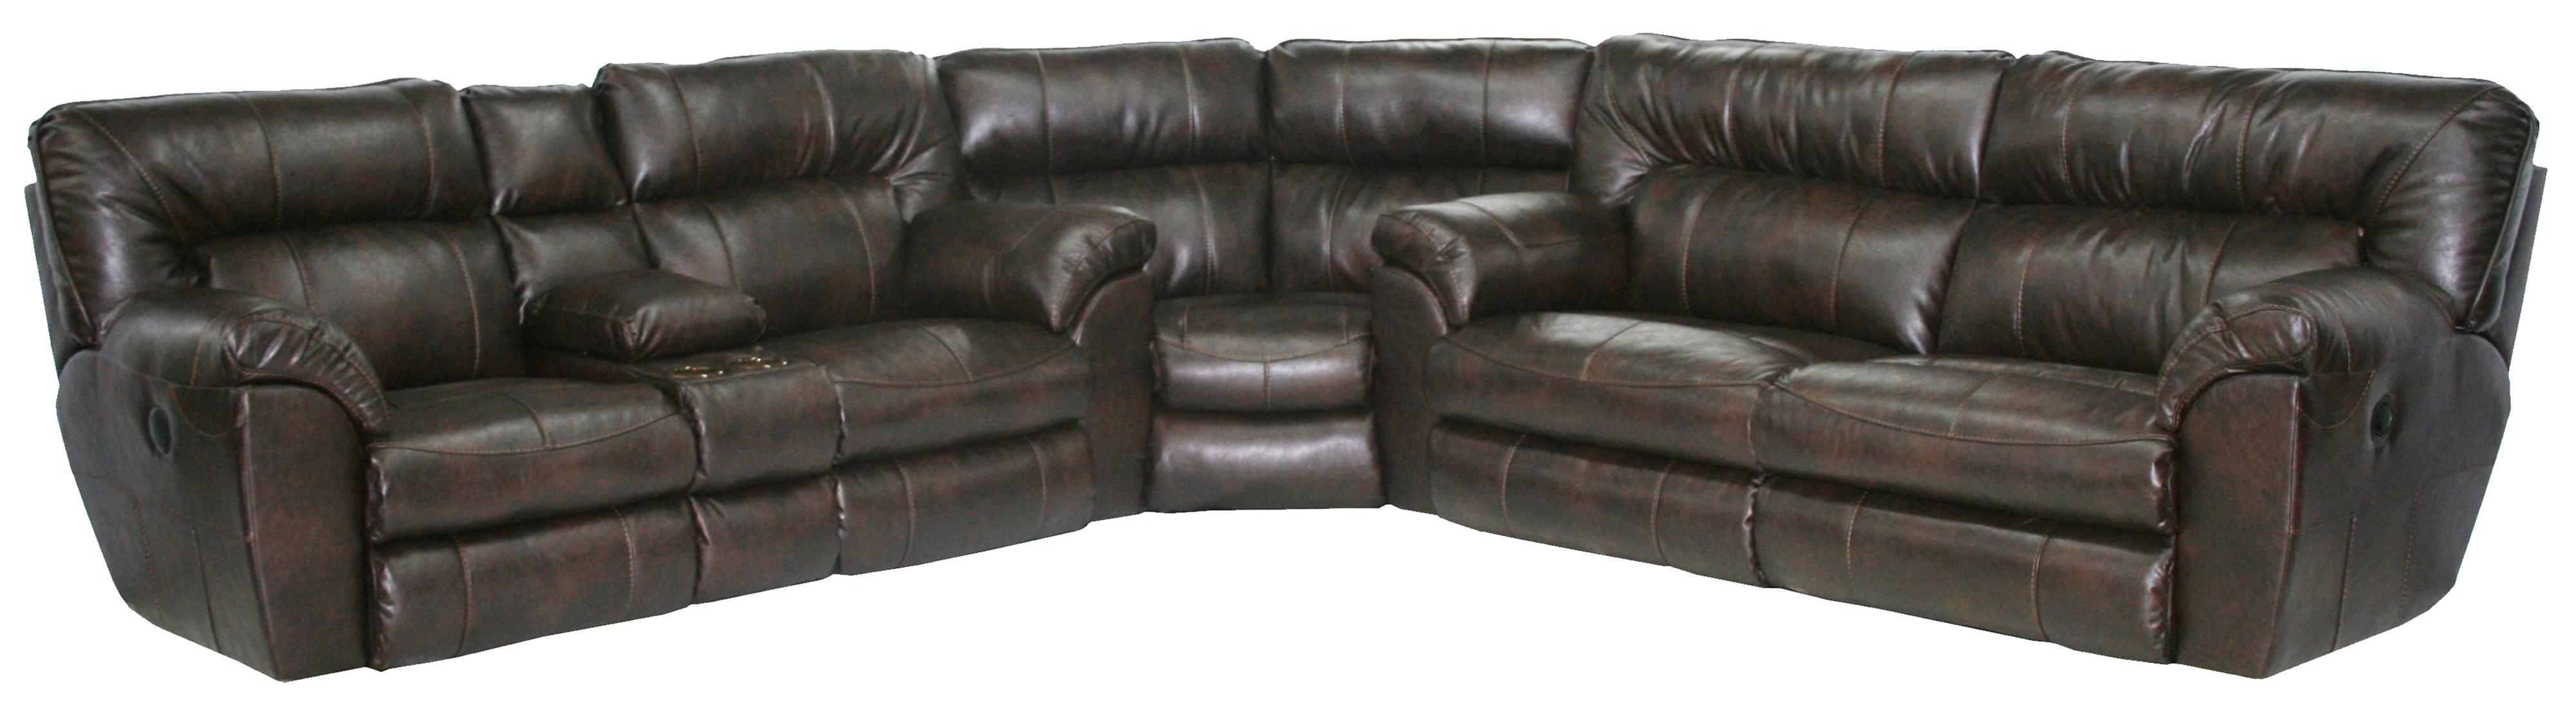 MAVERICK Power Reclining Sectional with Left Console by Catnapper at EFO Furniture Outlet